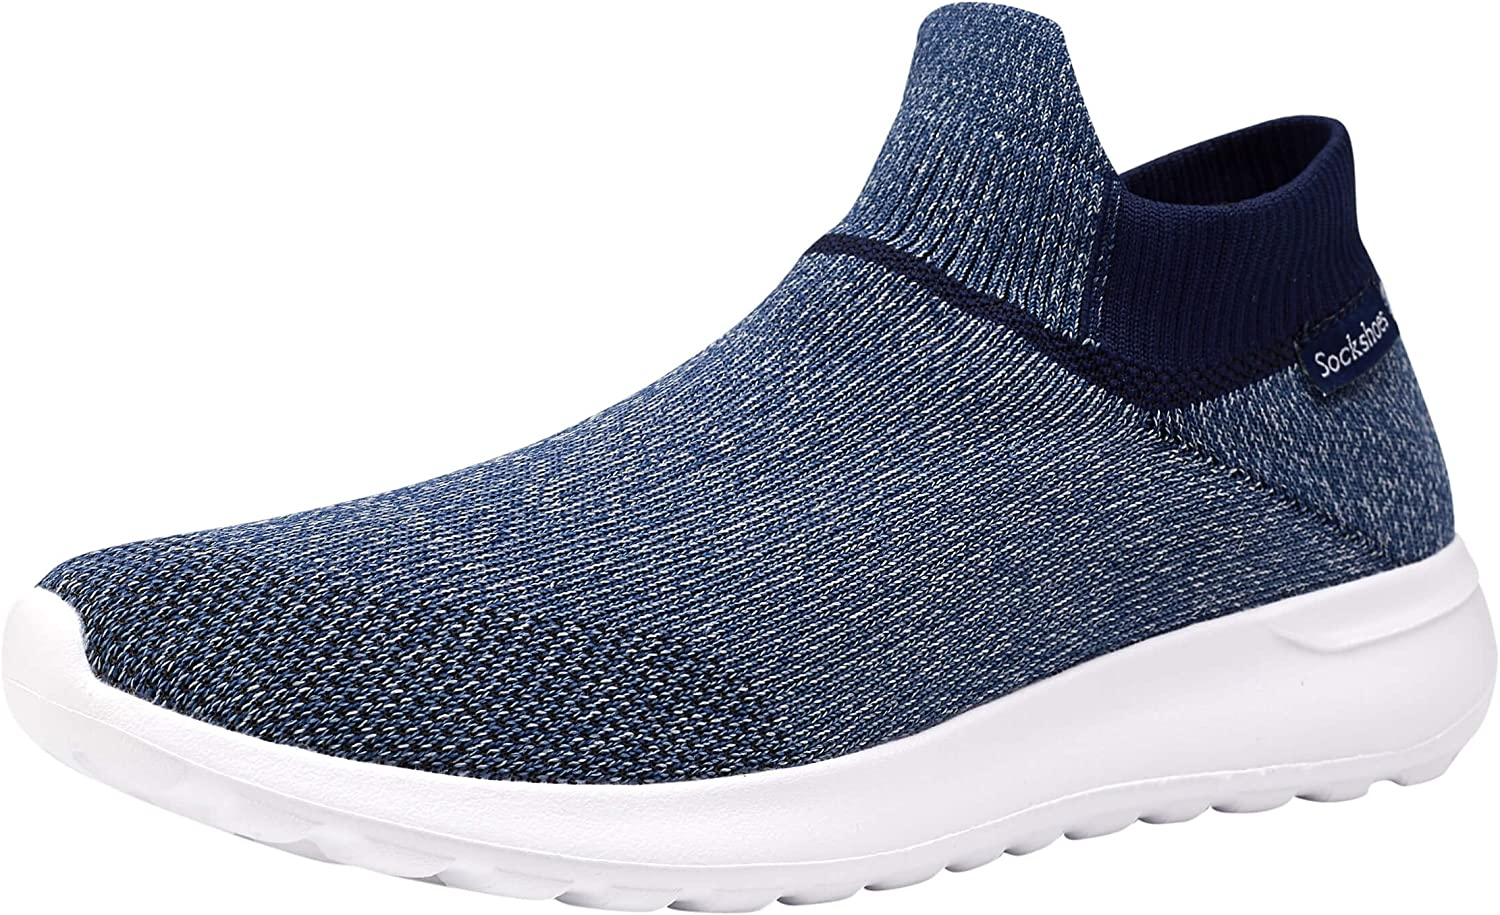 Phefee Mens Ultrasock shoes Fashion Casual Walking Sneakers for Lightweight and Super Soft Footwear